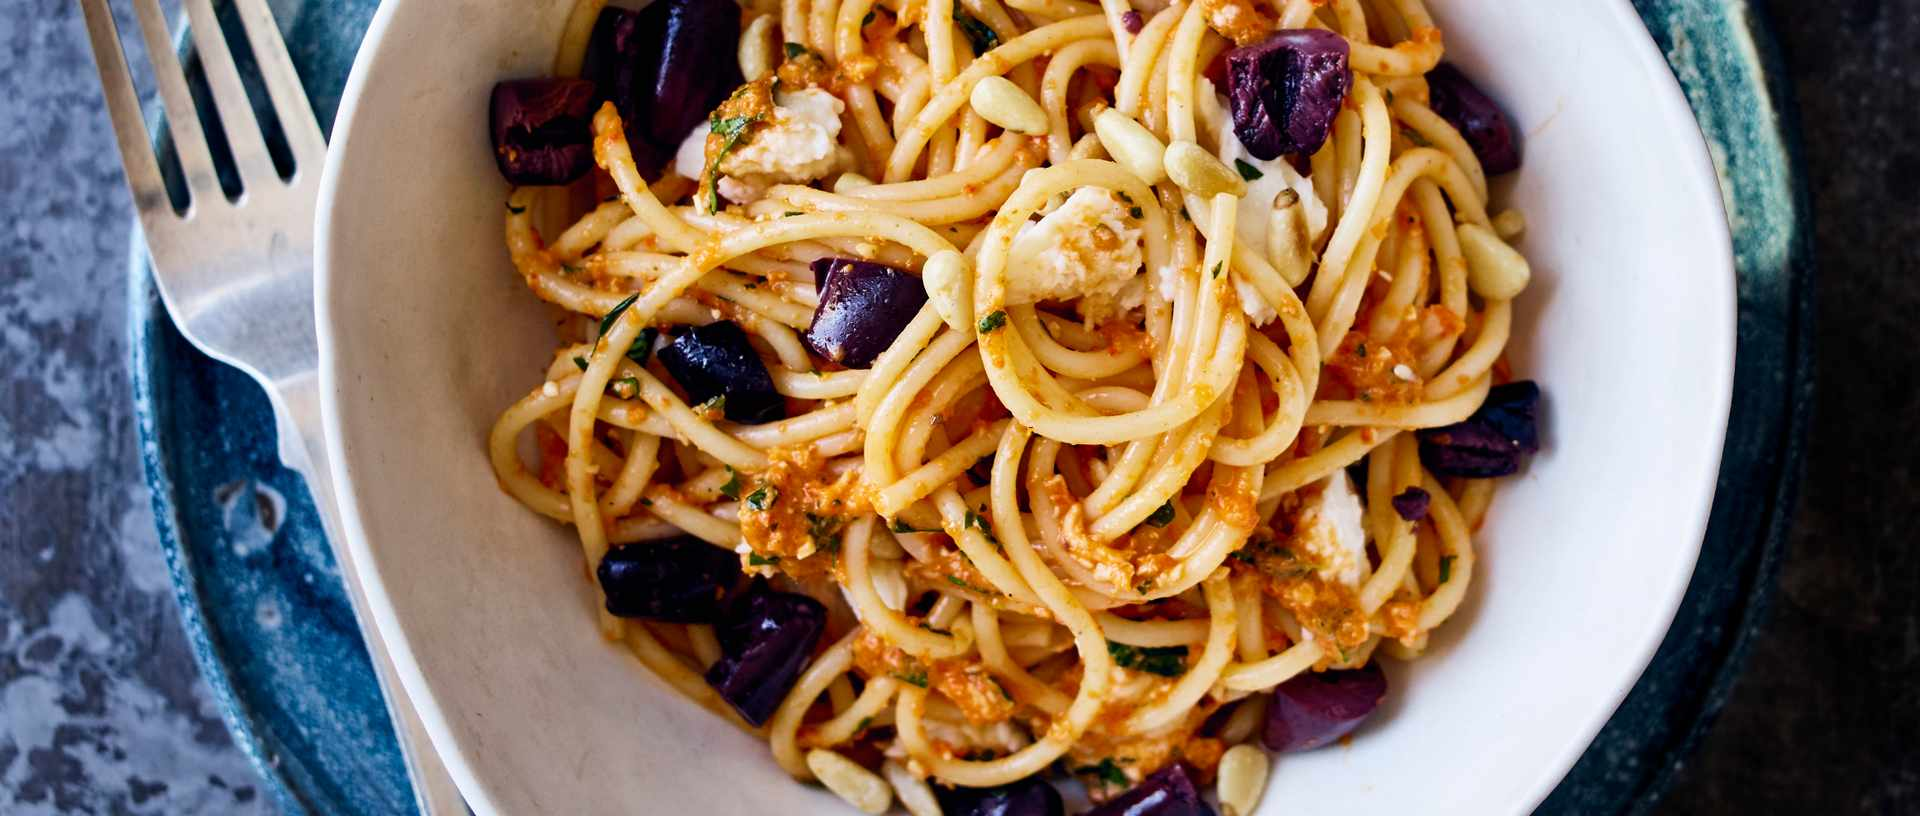 Spaghetti with ajvar, mozzarella and smashed olives